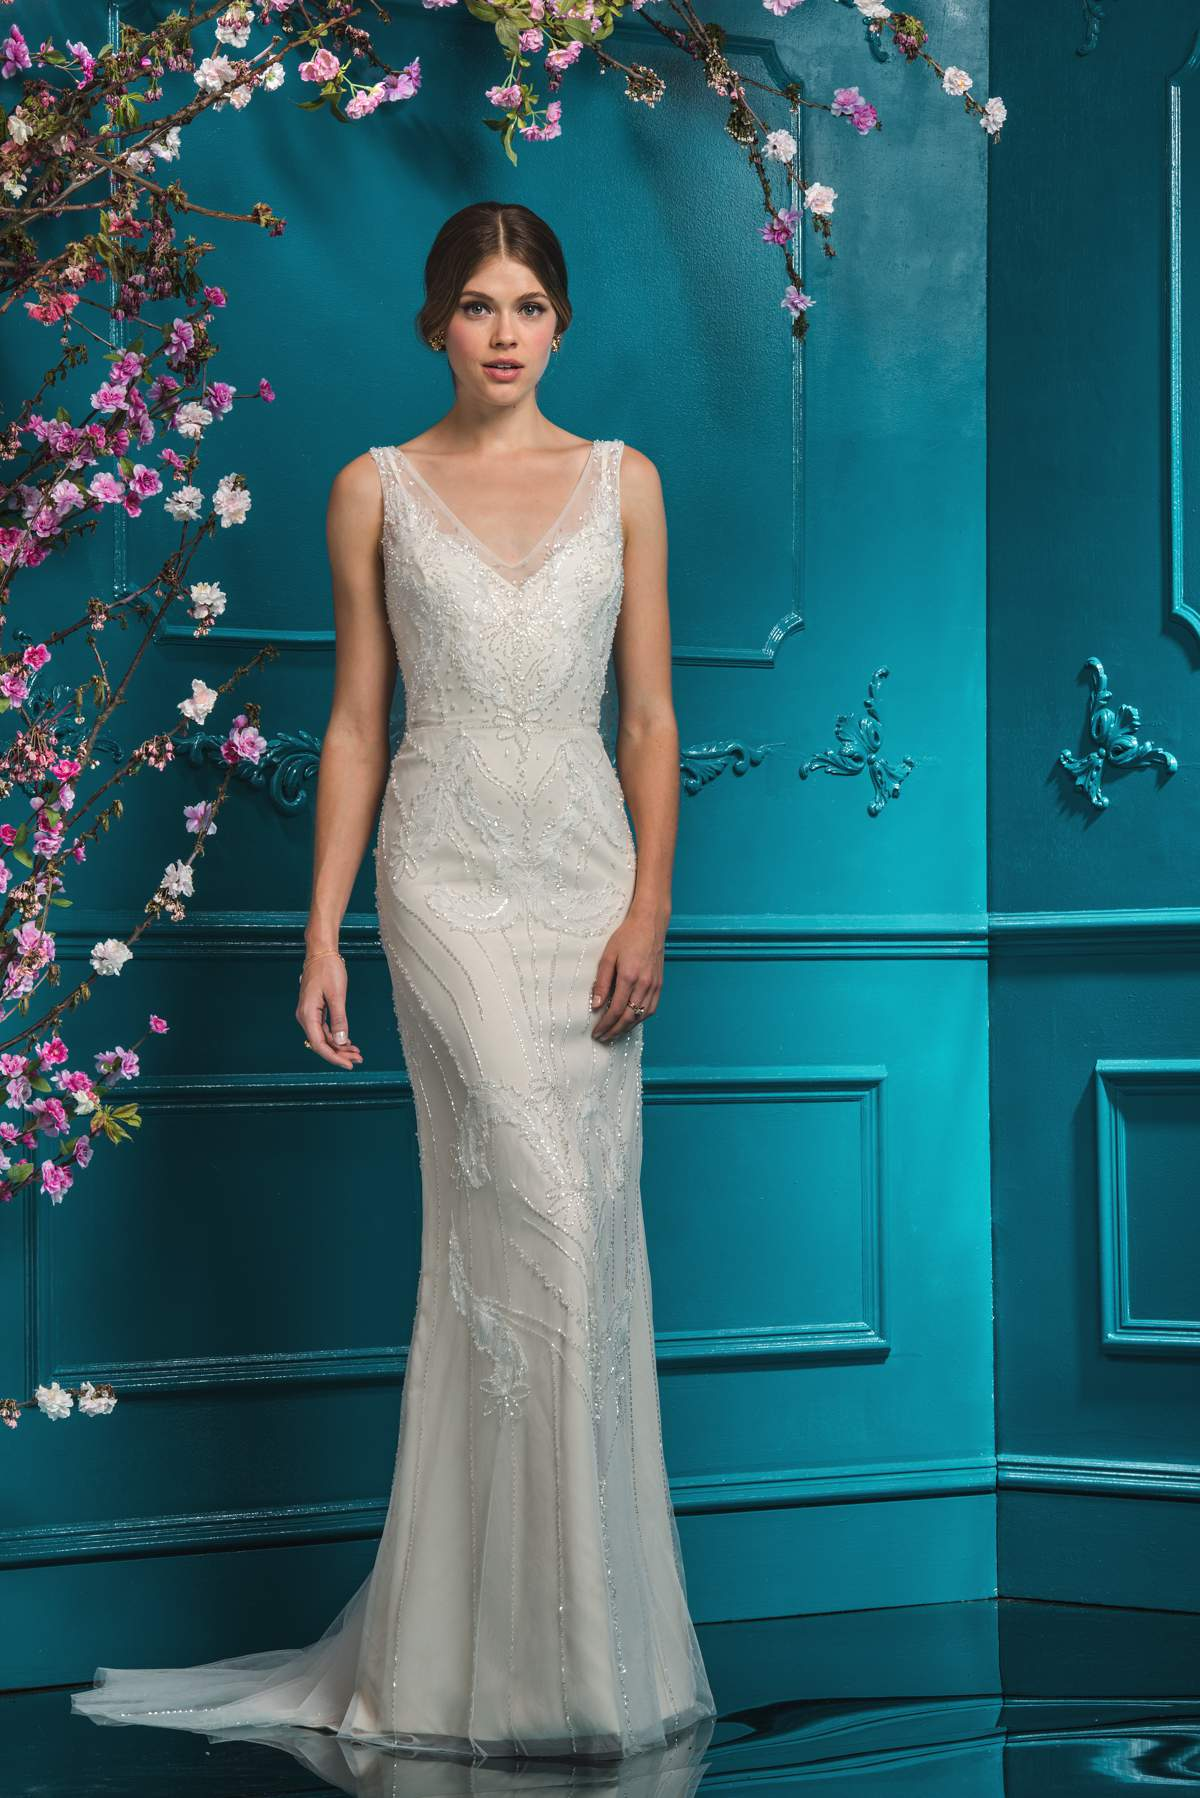 lace wedding dresses Archives - Find Your Dream Dress